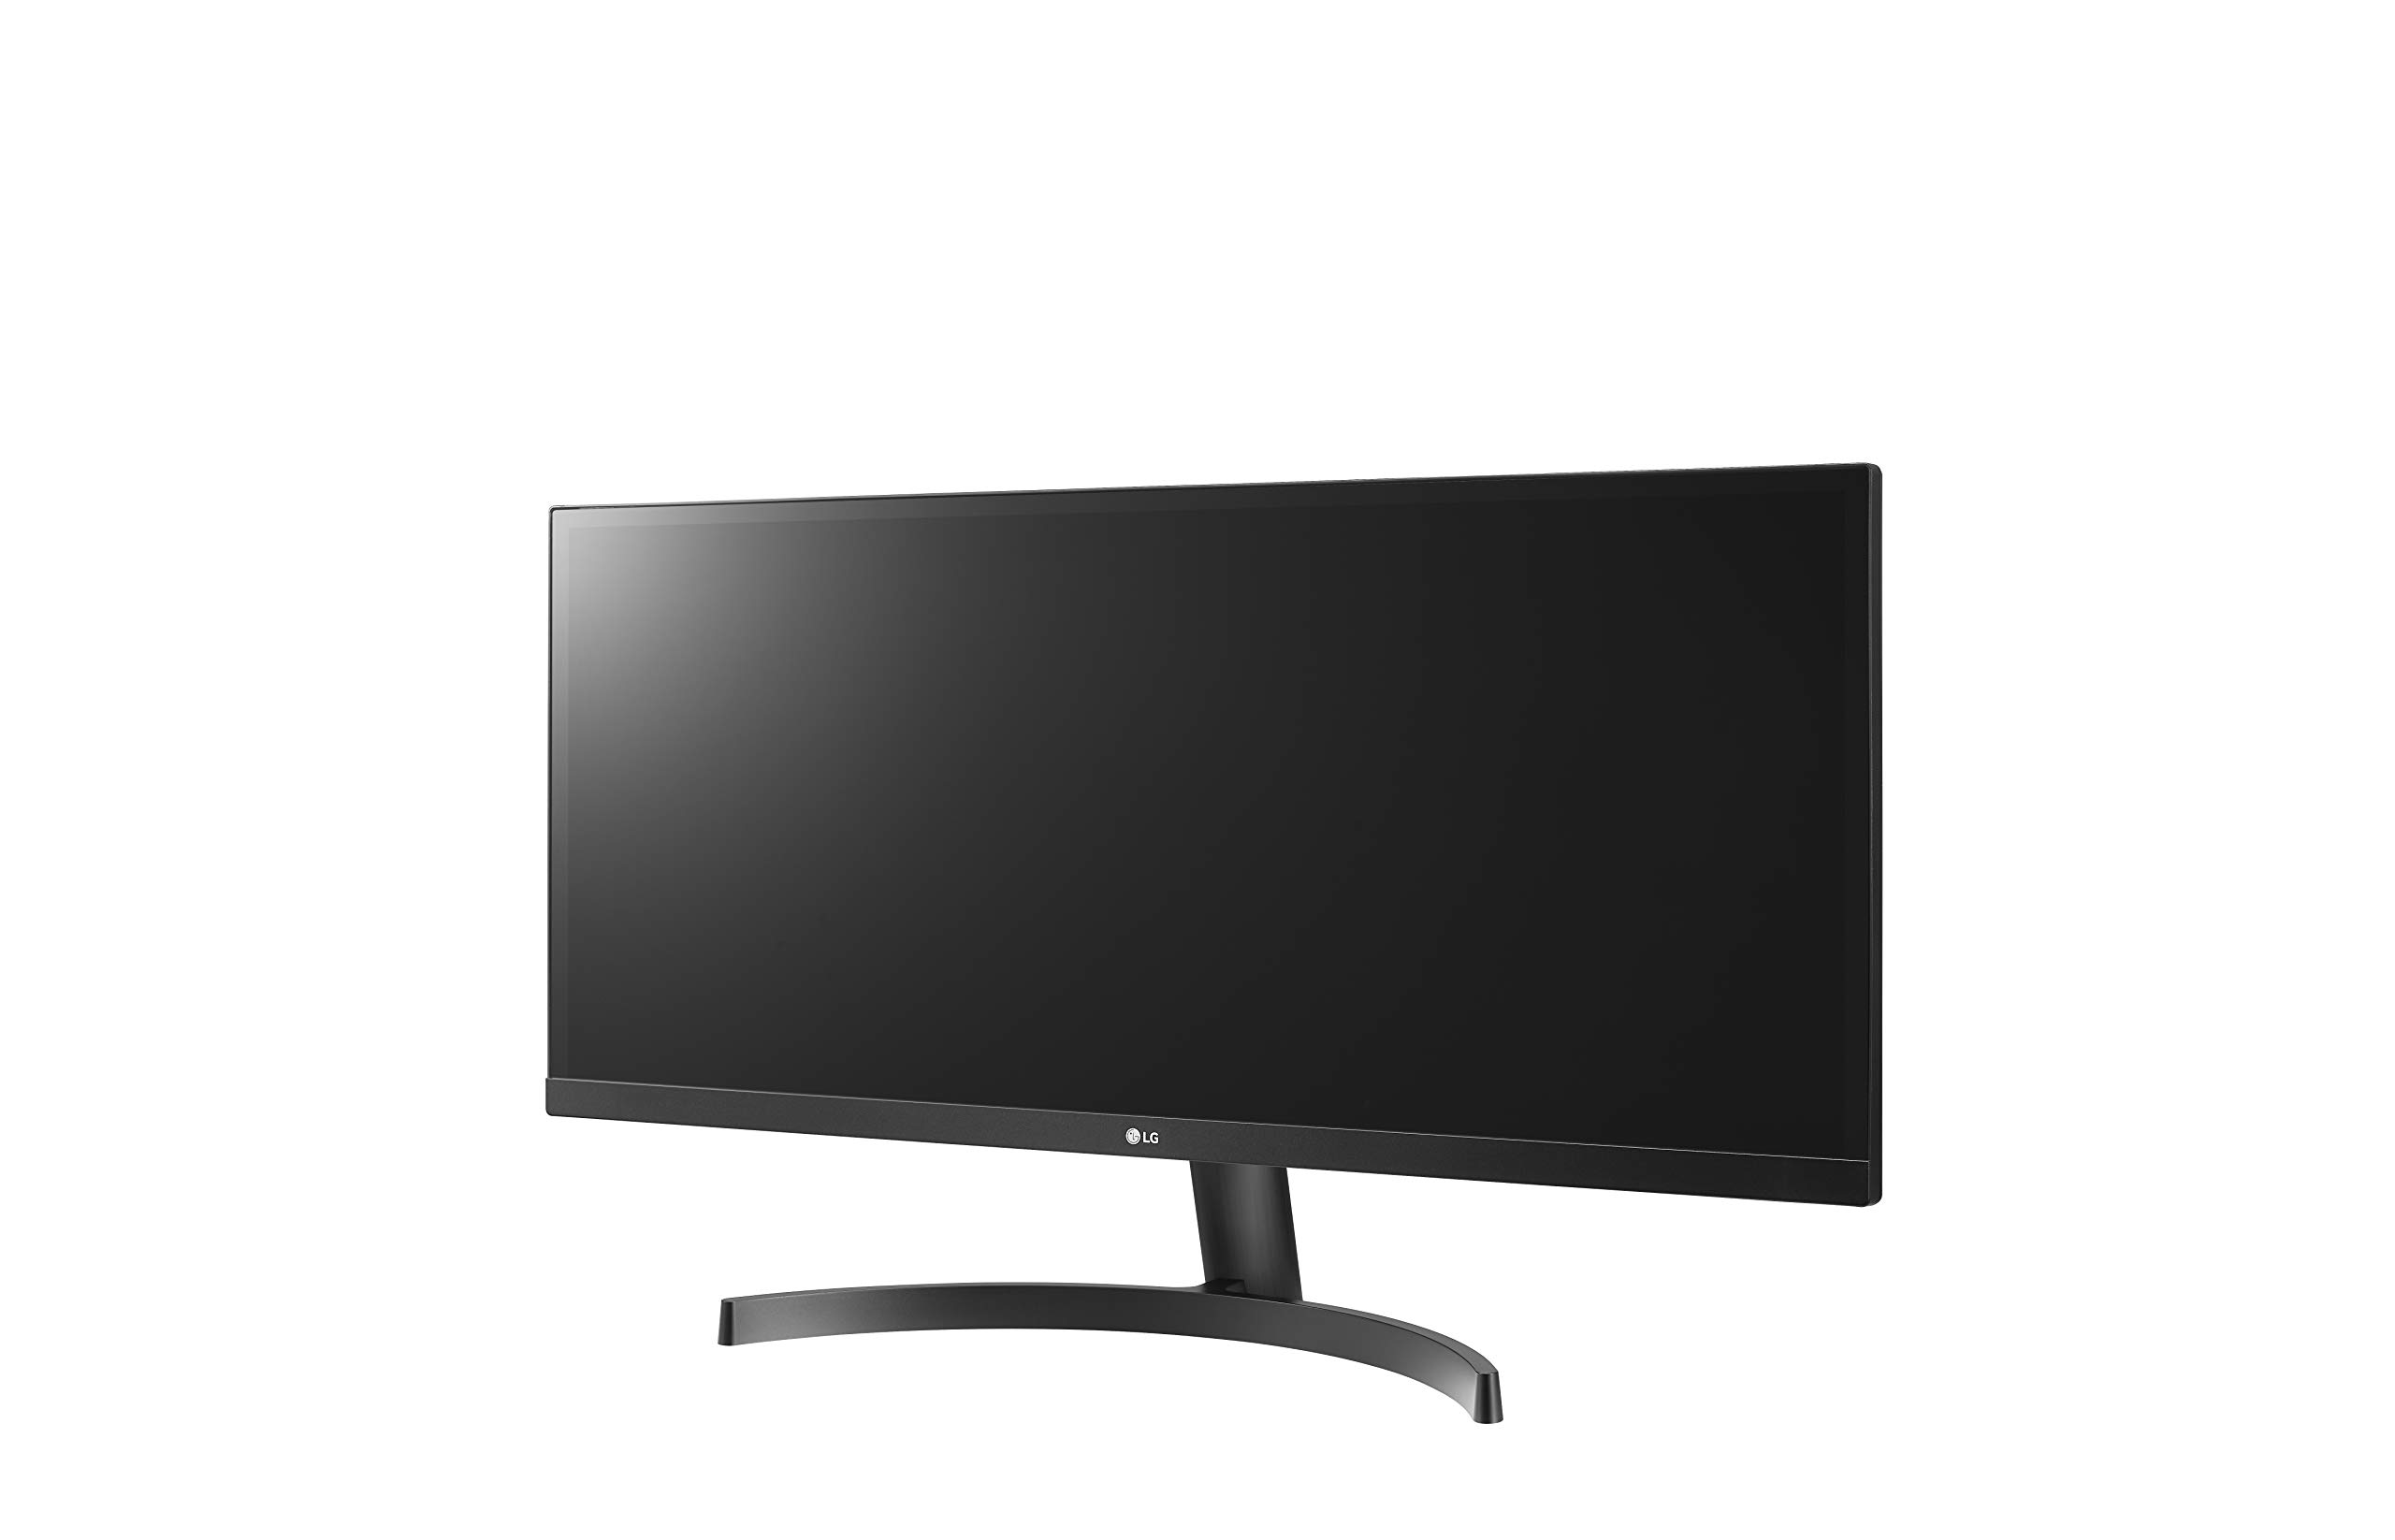 LG 29WK500 Monitor, 21:9 UltraWide LED IPS, 2560x1080, AMD FreeSync 75Hz